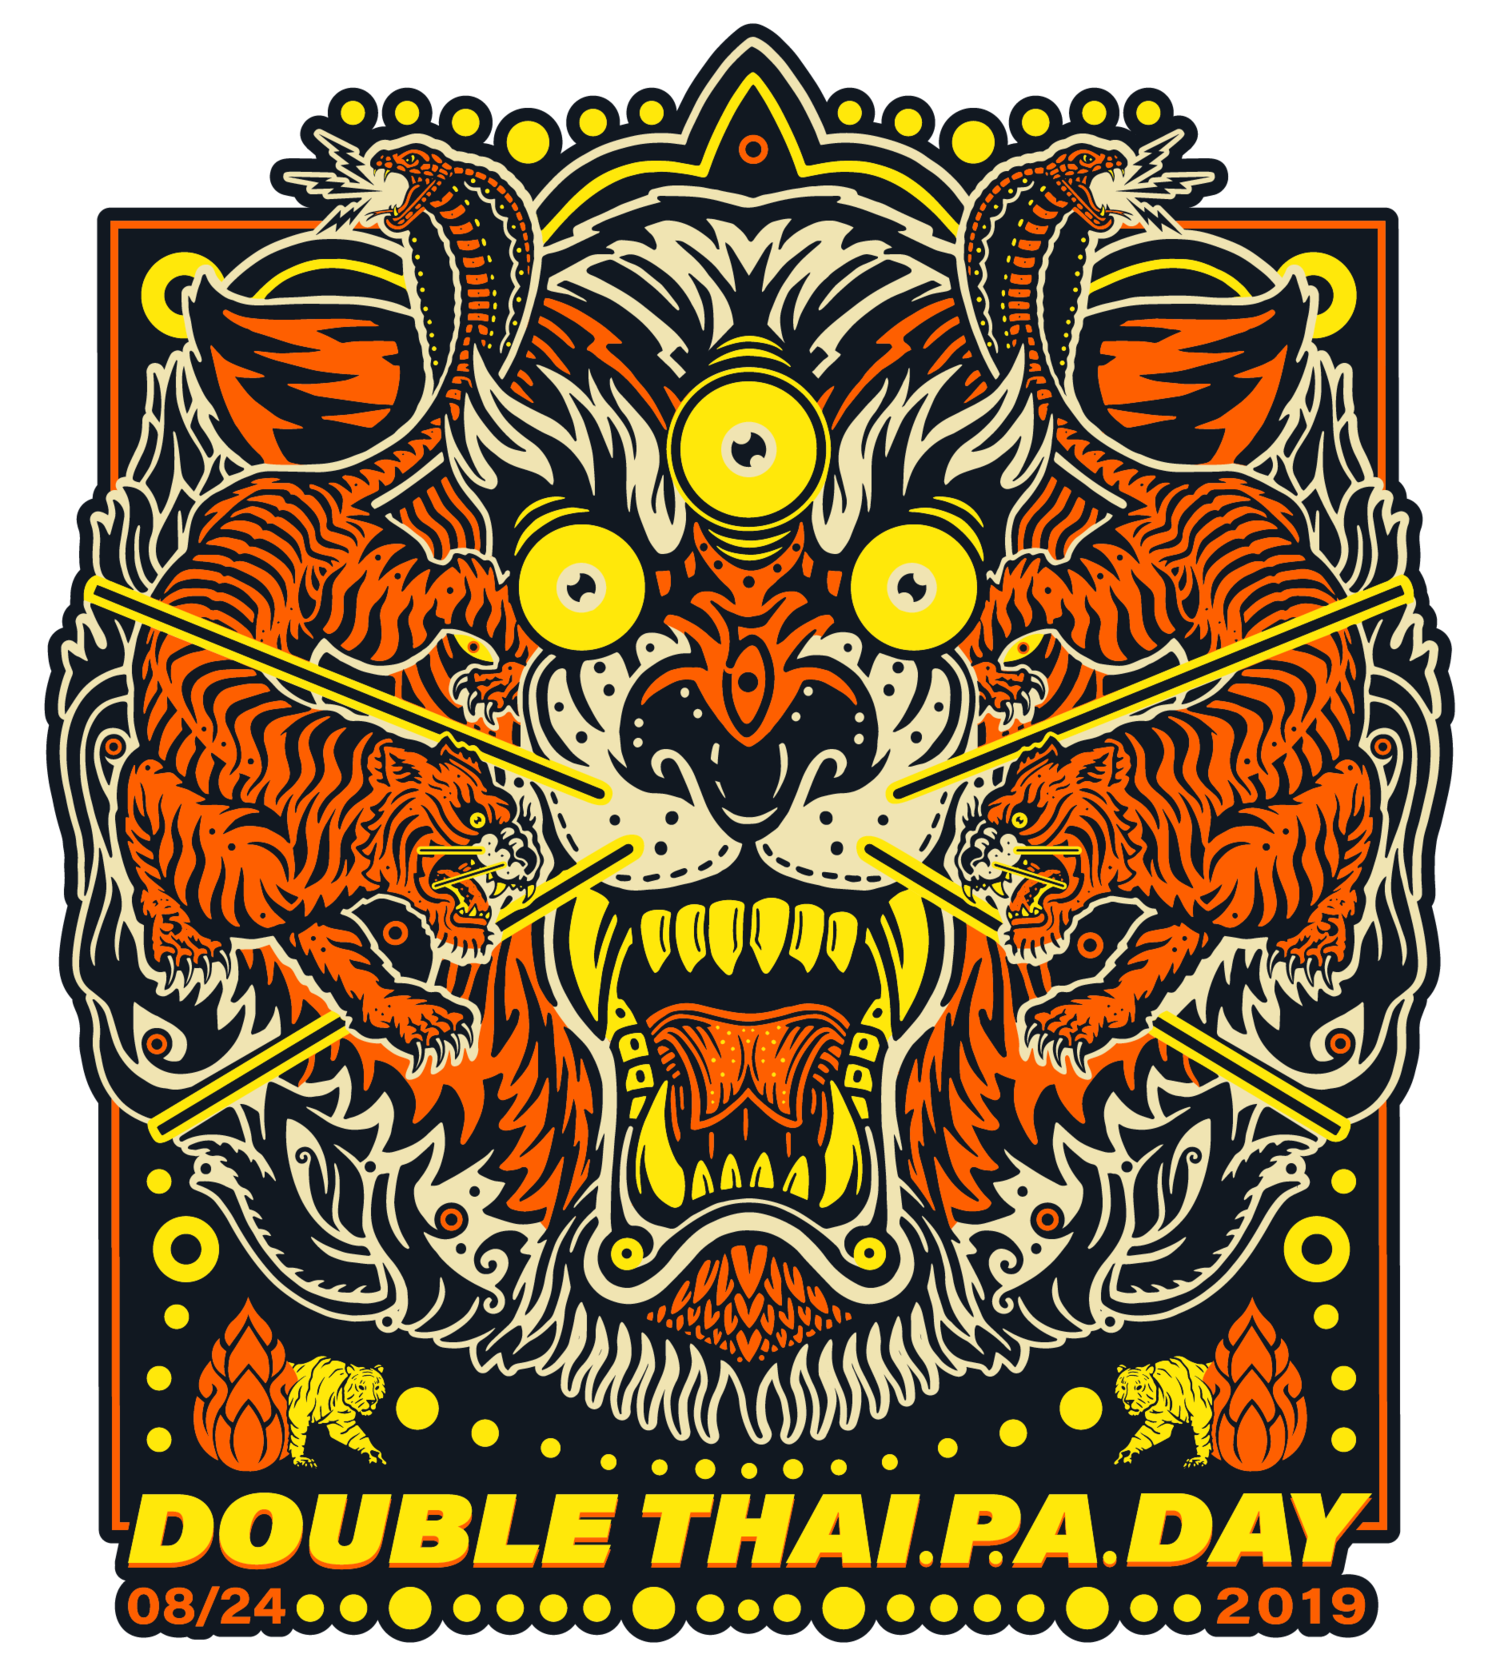 Double Thai Day